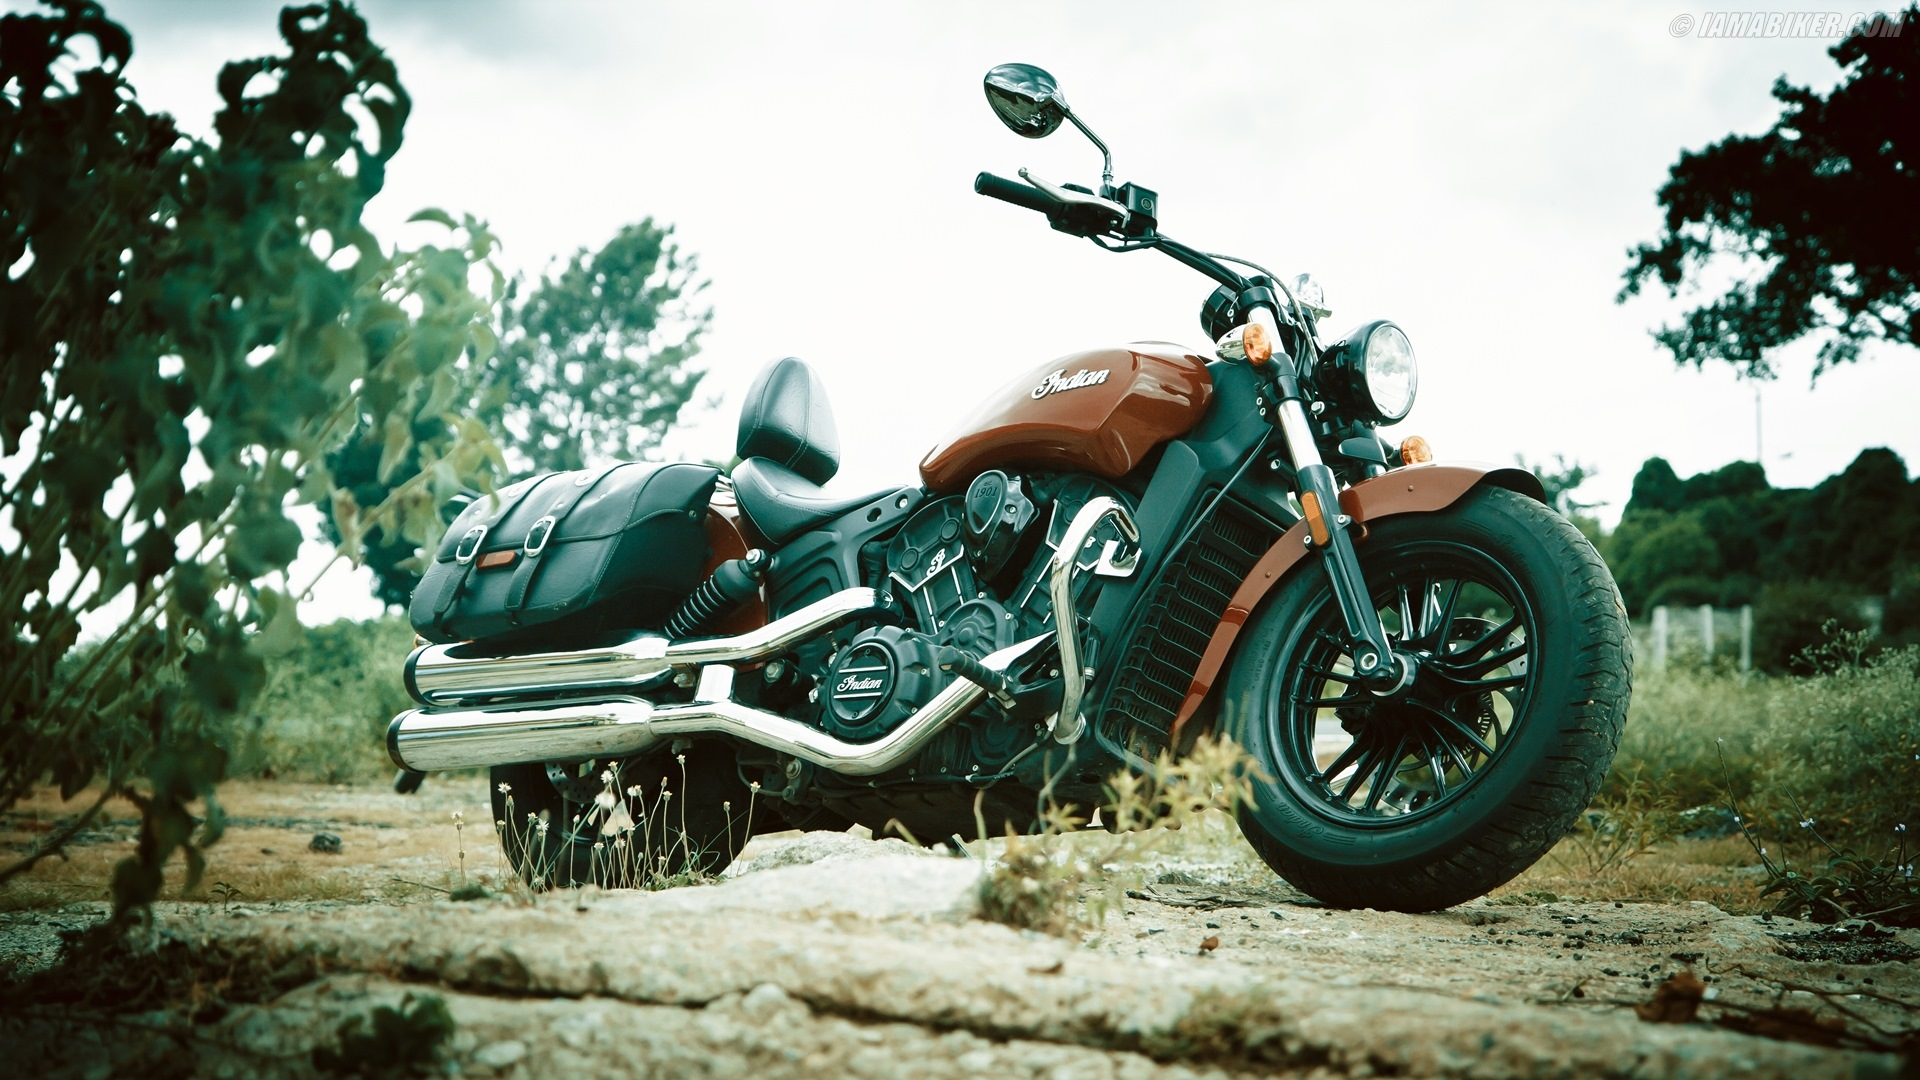 Indian scout sixty hd wallpapers iamabiker everything - Indian scout bike hd wallpaper ...